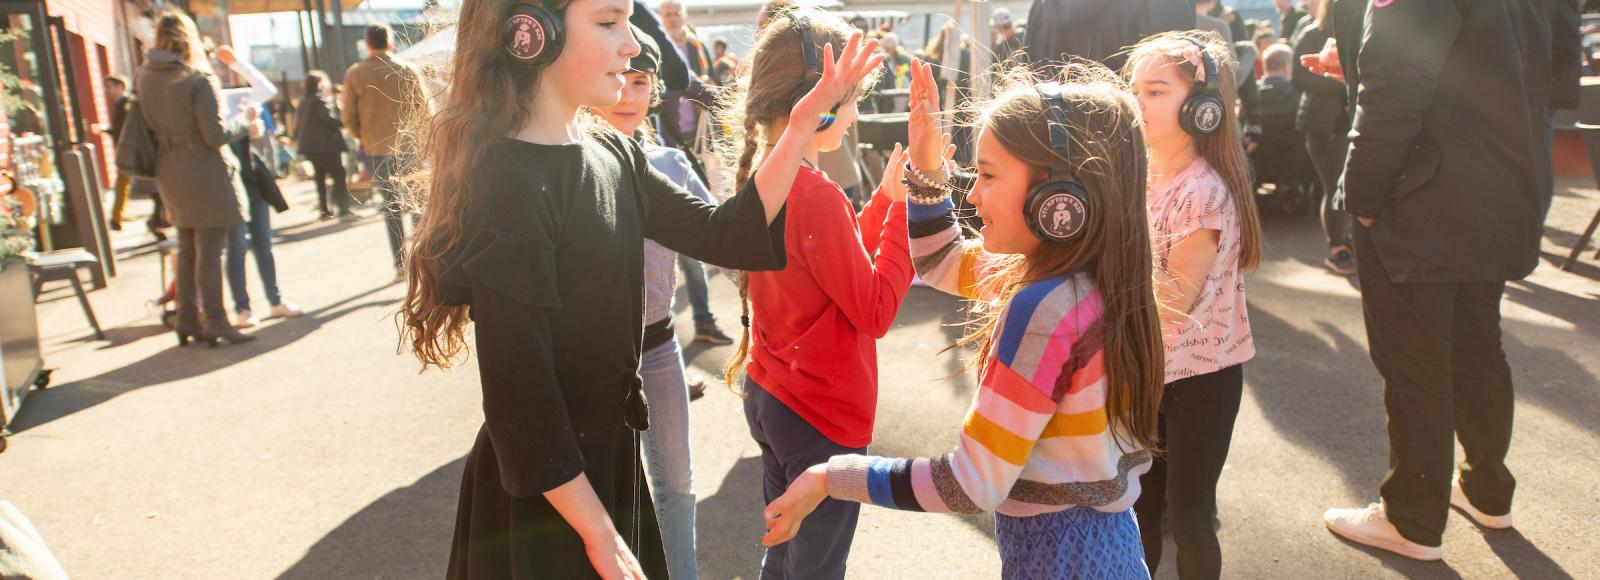 A group of girls wearing headphones play patticakes outside on a bright, sunny day.